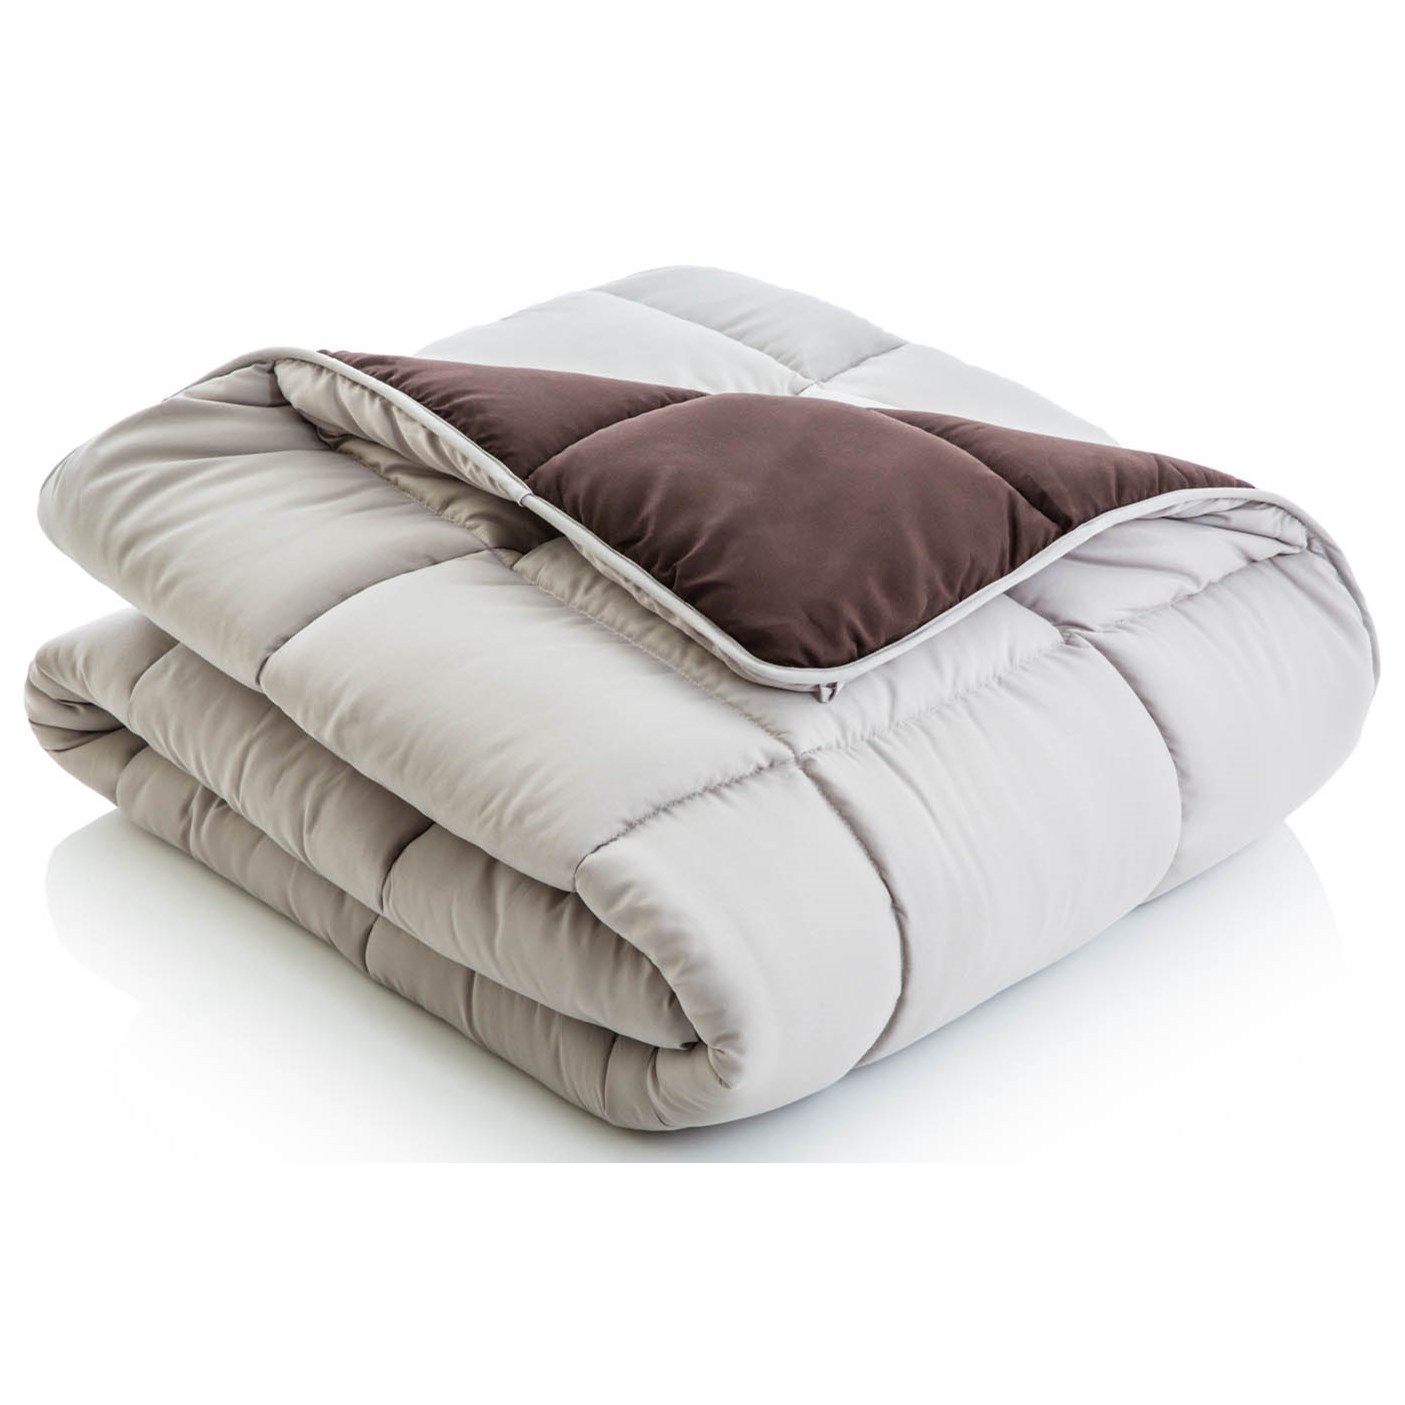 Malouf Reversible Bed in a Bag Cal King Reversible Bed in a Bag - Item Number: MA01CKDRCOBB